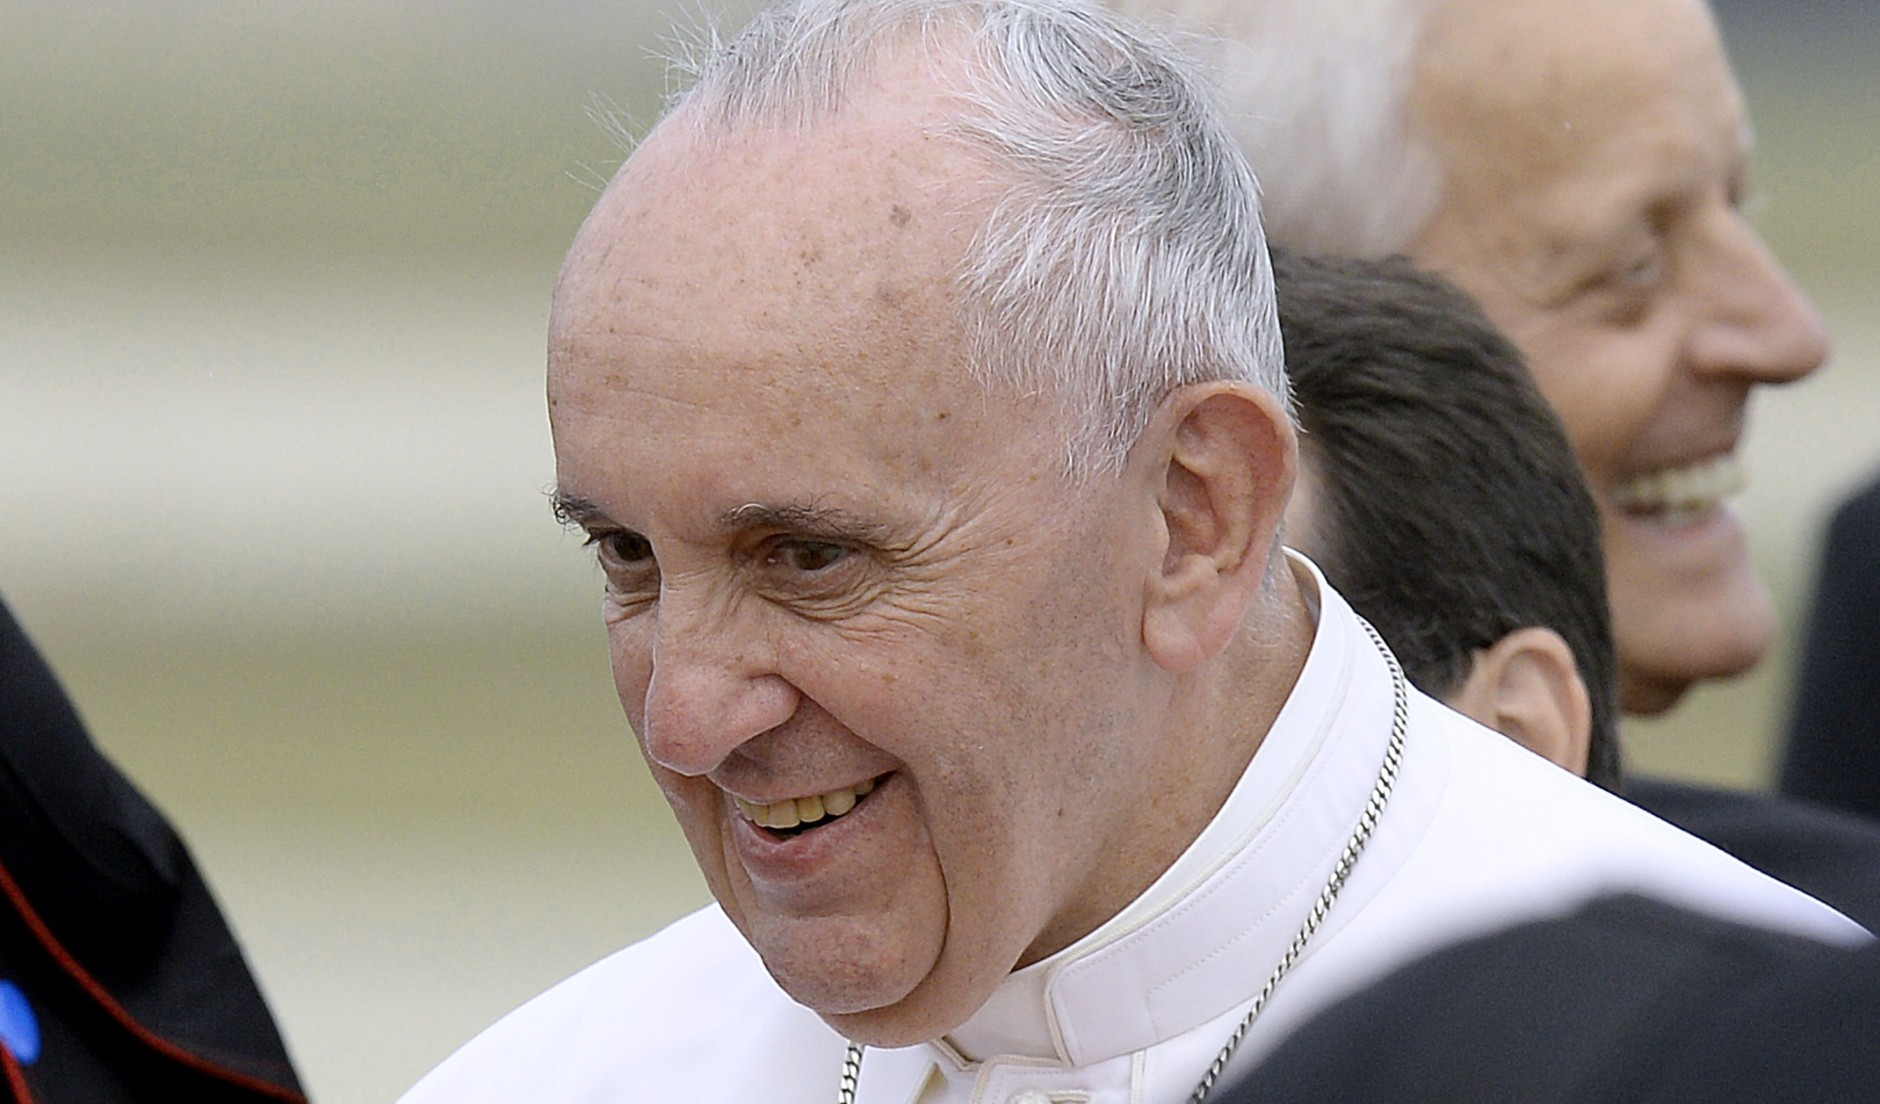 JOINT BASE ANDREWS, MD - SEPTEMBER 22:   (AFP OUT) Pope Francis arrives from Cuba September 22, 2015 at Joint Base Andrews, Maryland. Francis will be visiting Washington, New York City and Philadelphia during his first trip to the United States as Pope.  (Photo by Olivier Douliery-Pool/Getty Images)